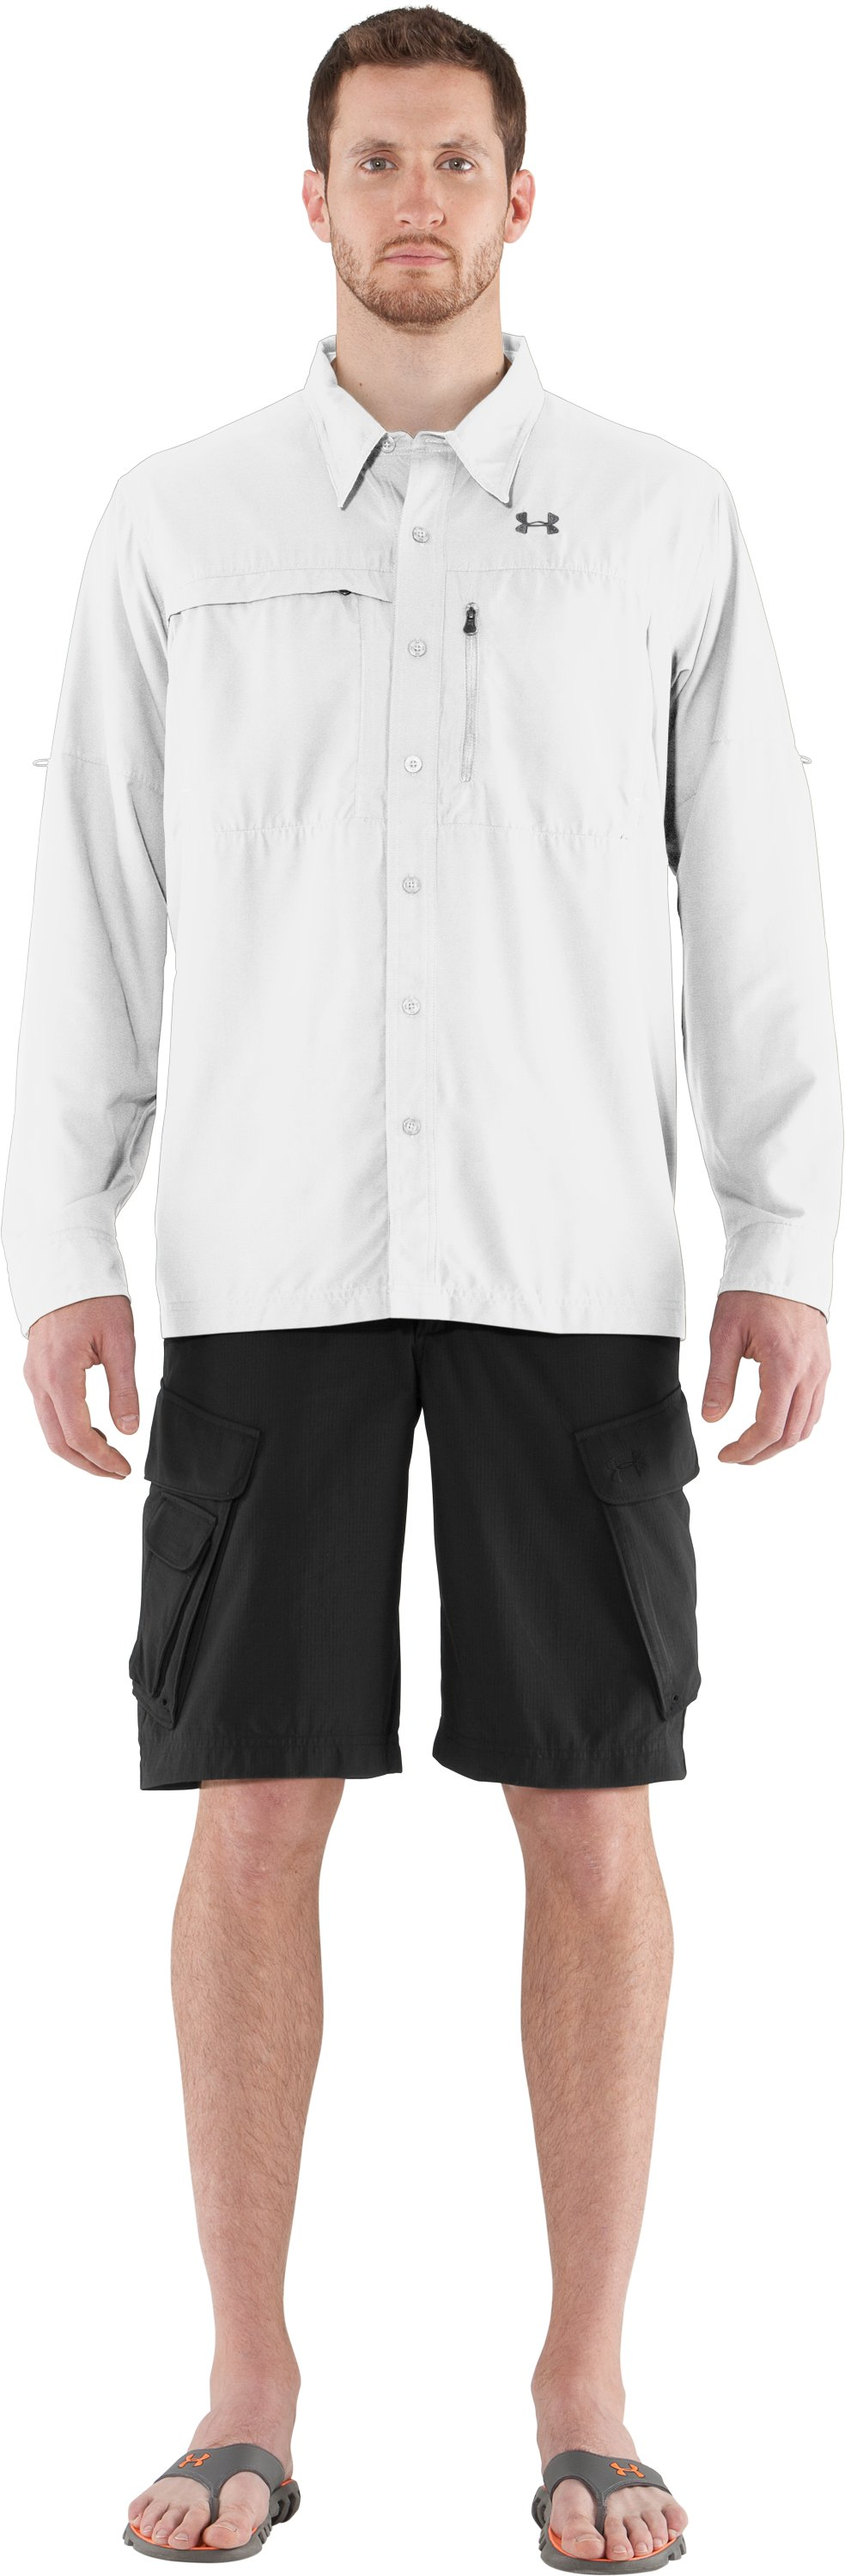 Men's Flats Guide Long Sleeve Shirt, White, Front